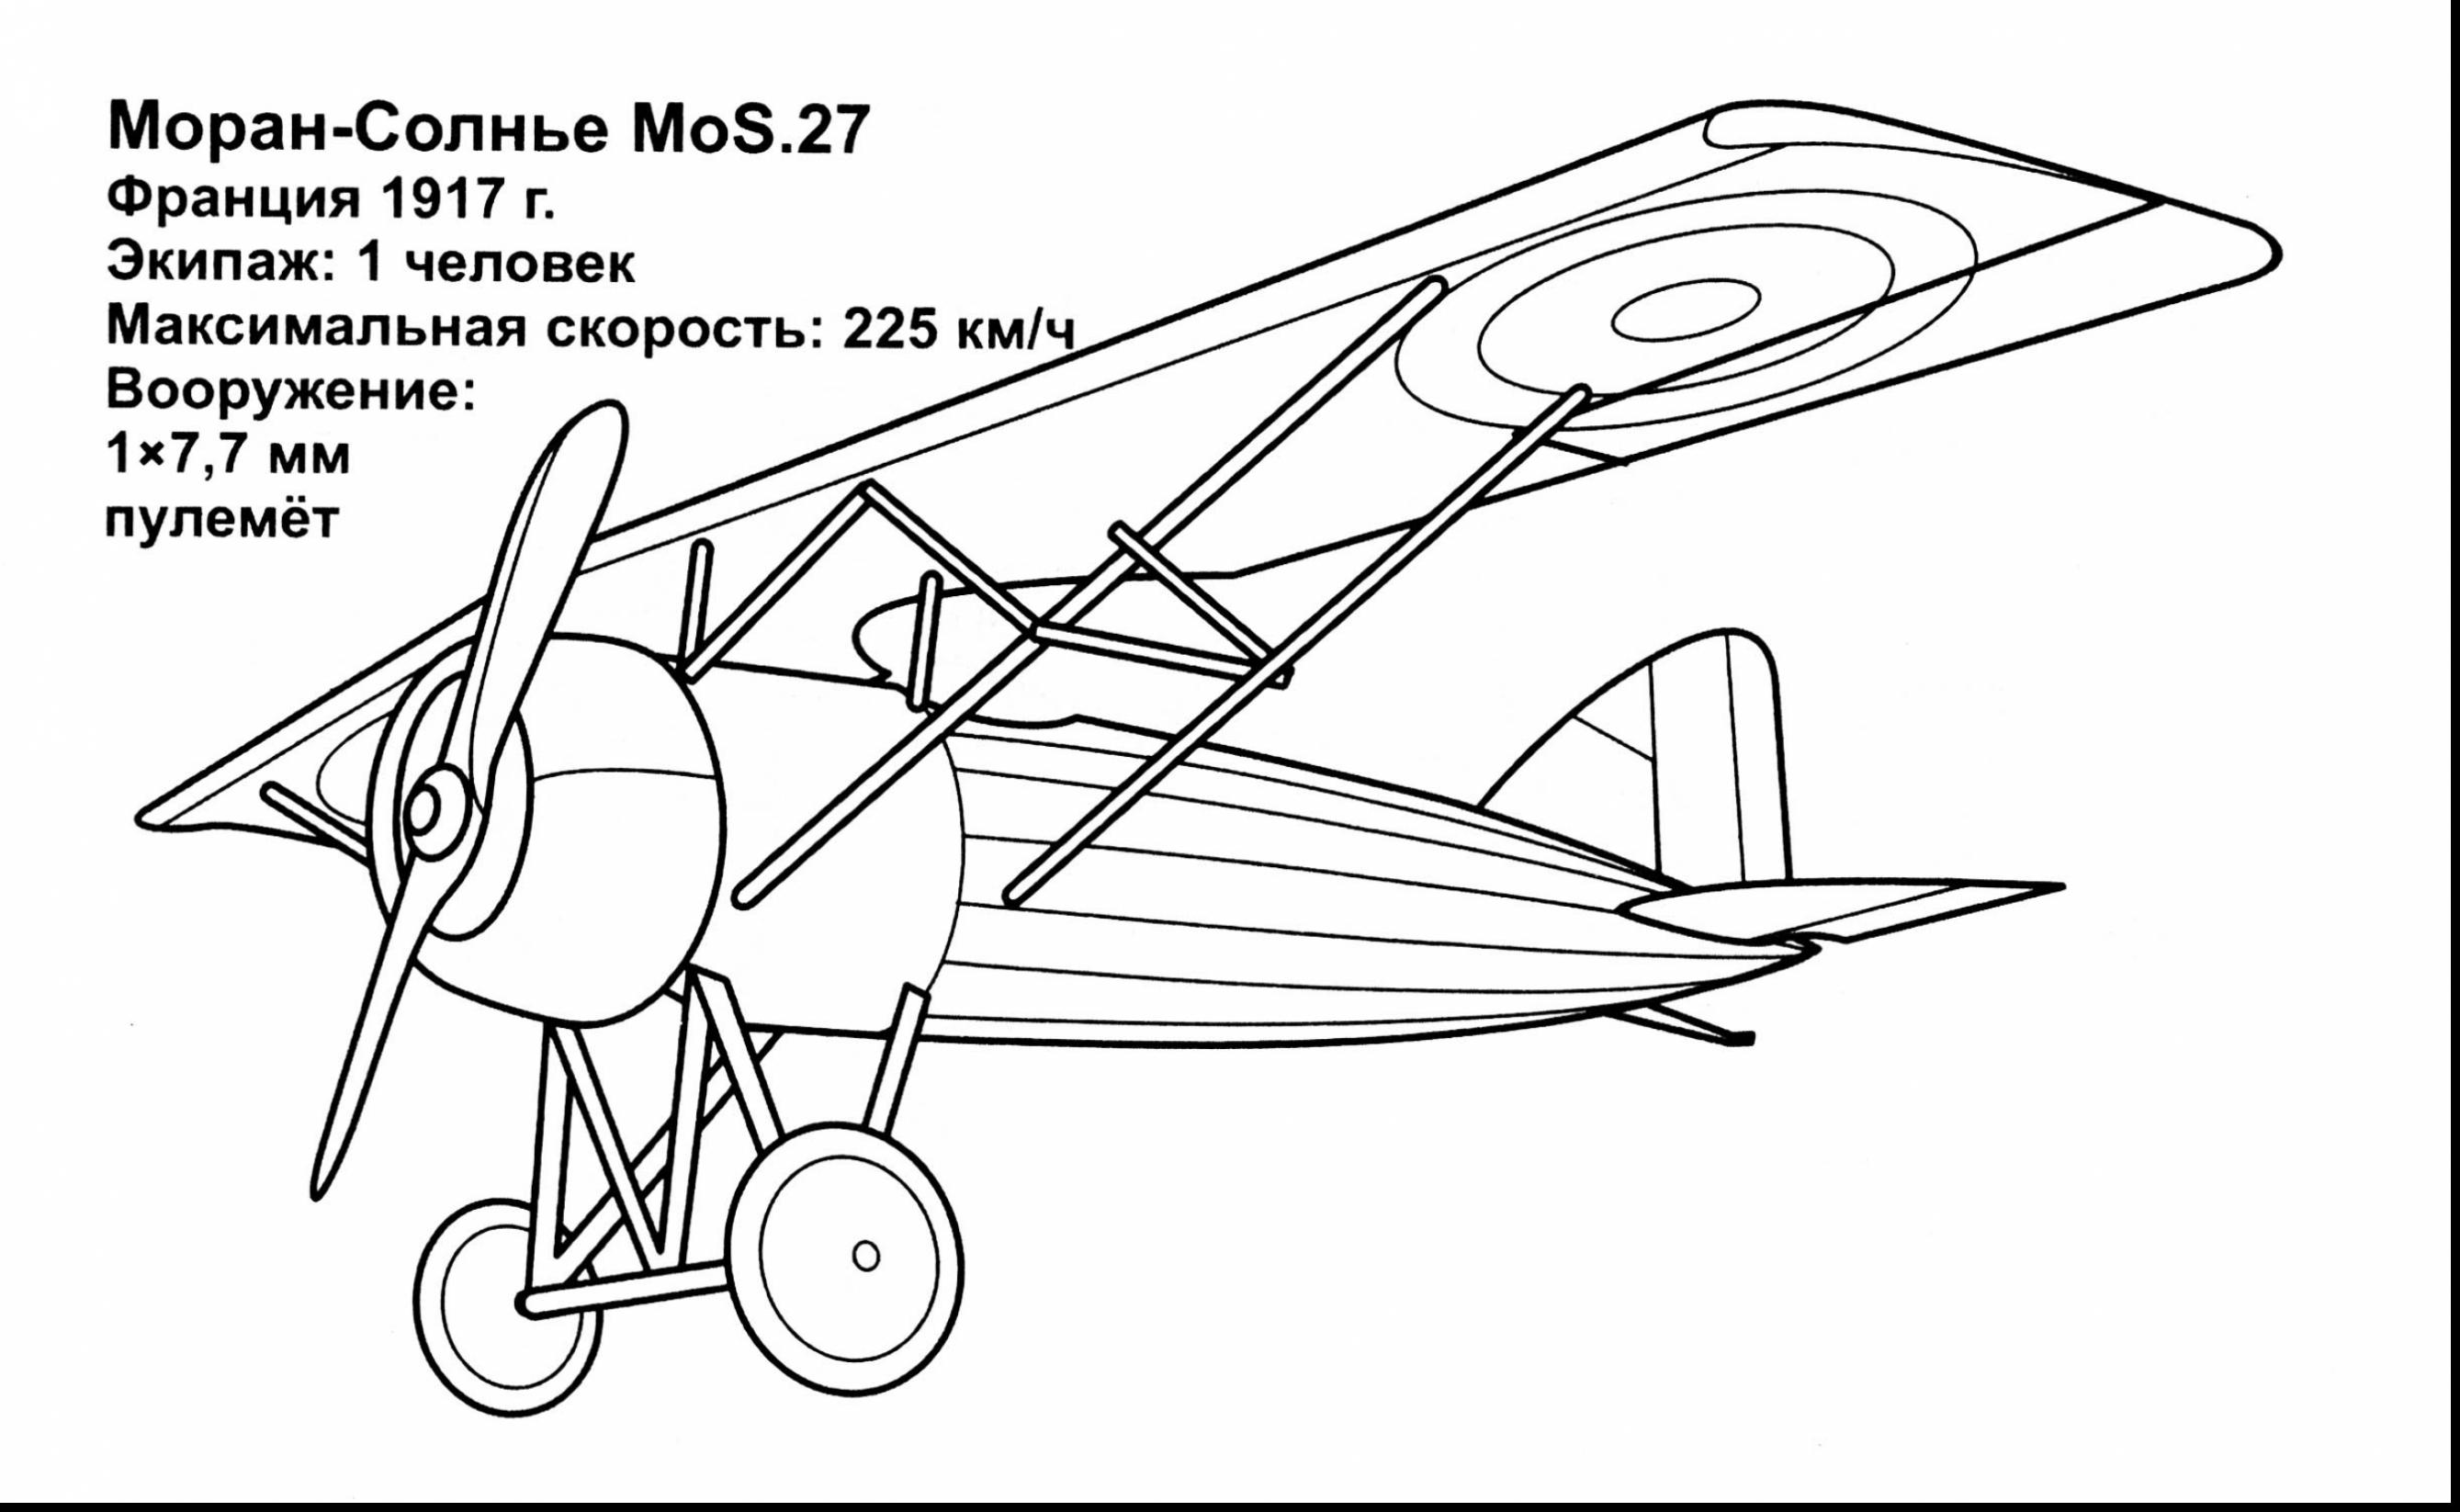 2678x1646 Remarkable Airplane Coloring Pages Printable With Planes Coloring